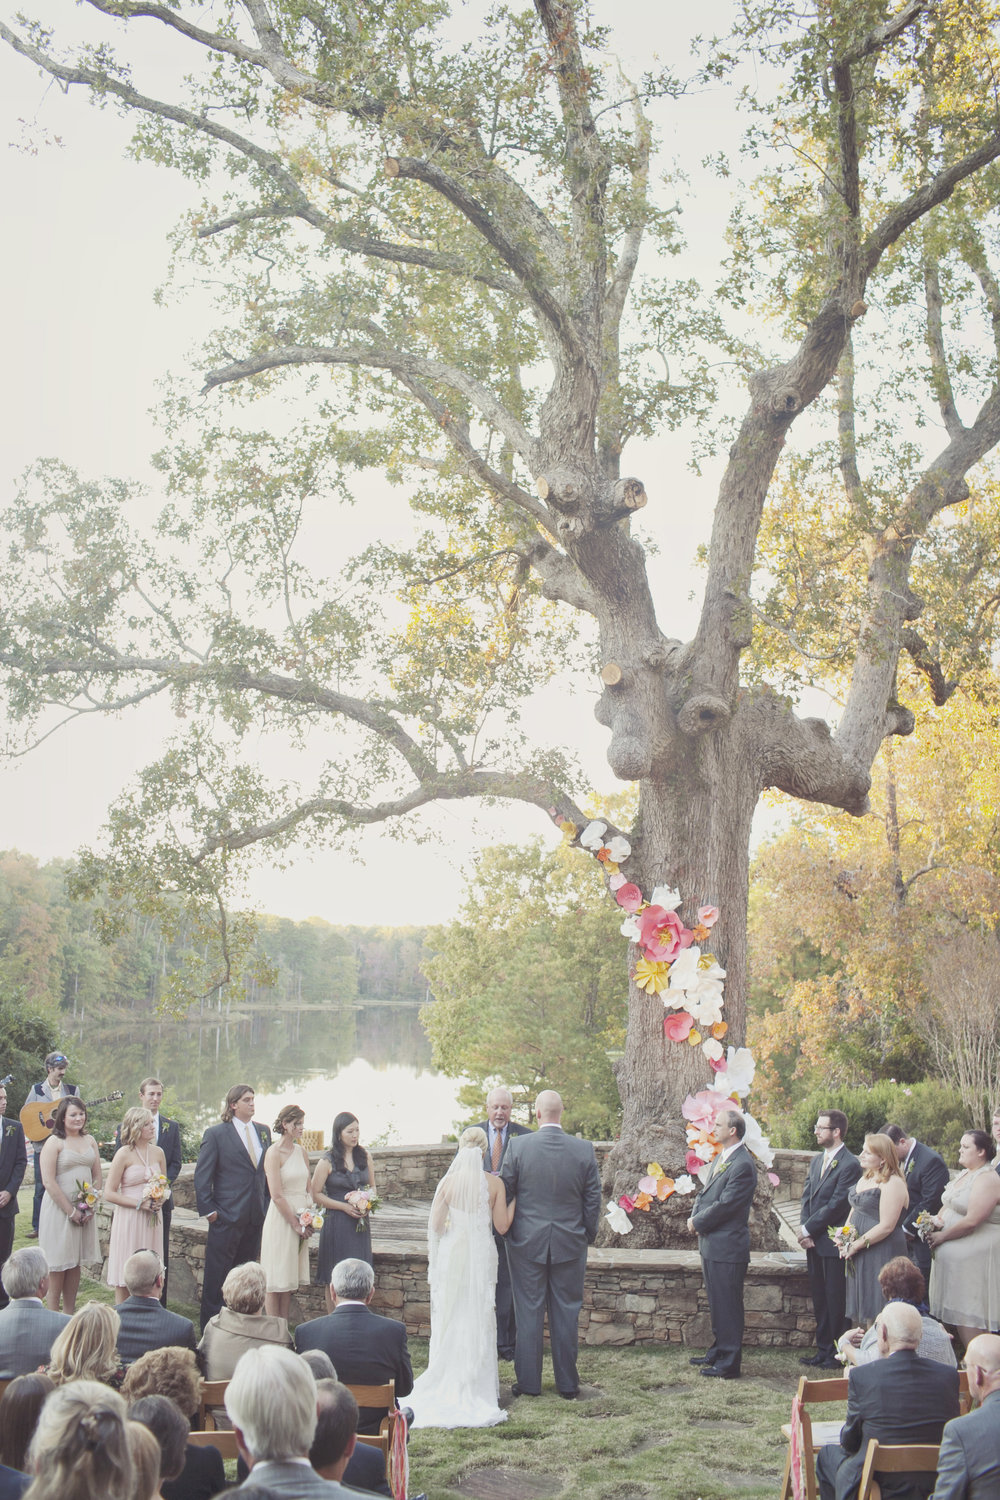 Simply-Charming-Socials_Atlanta-Wedding-Planner_Our-Labor-Of-Love_Maggie-and-Greg_20.jpg